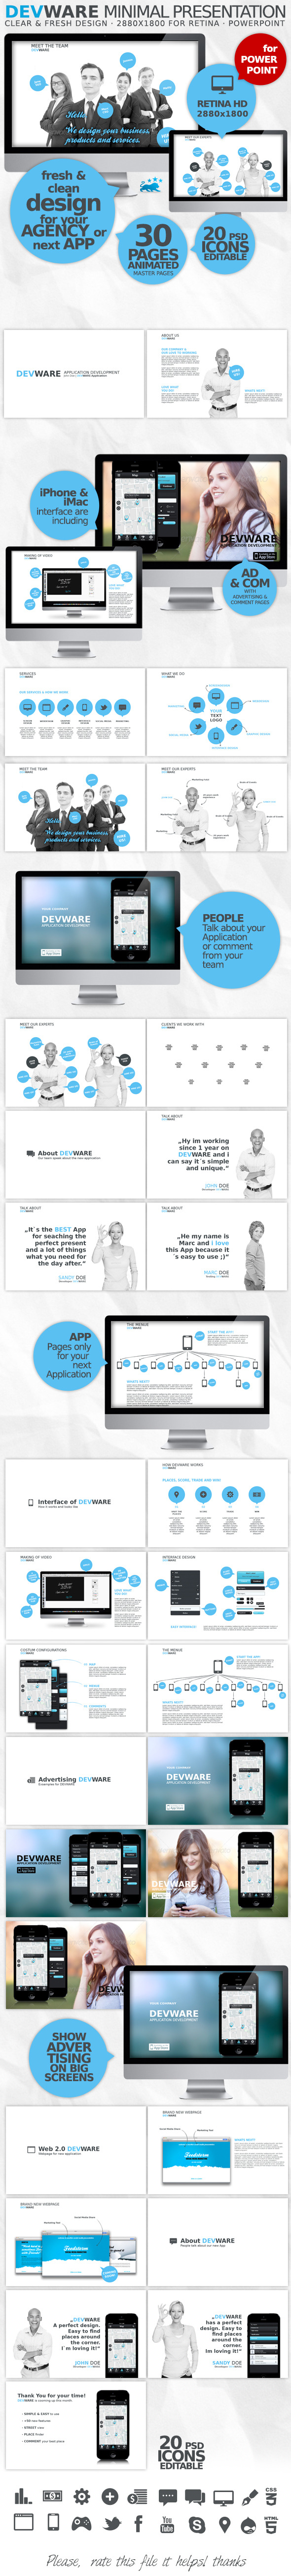 DEVWARE | 30 Pages | PowerPoint Presentation - Business PowerPoint Templates